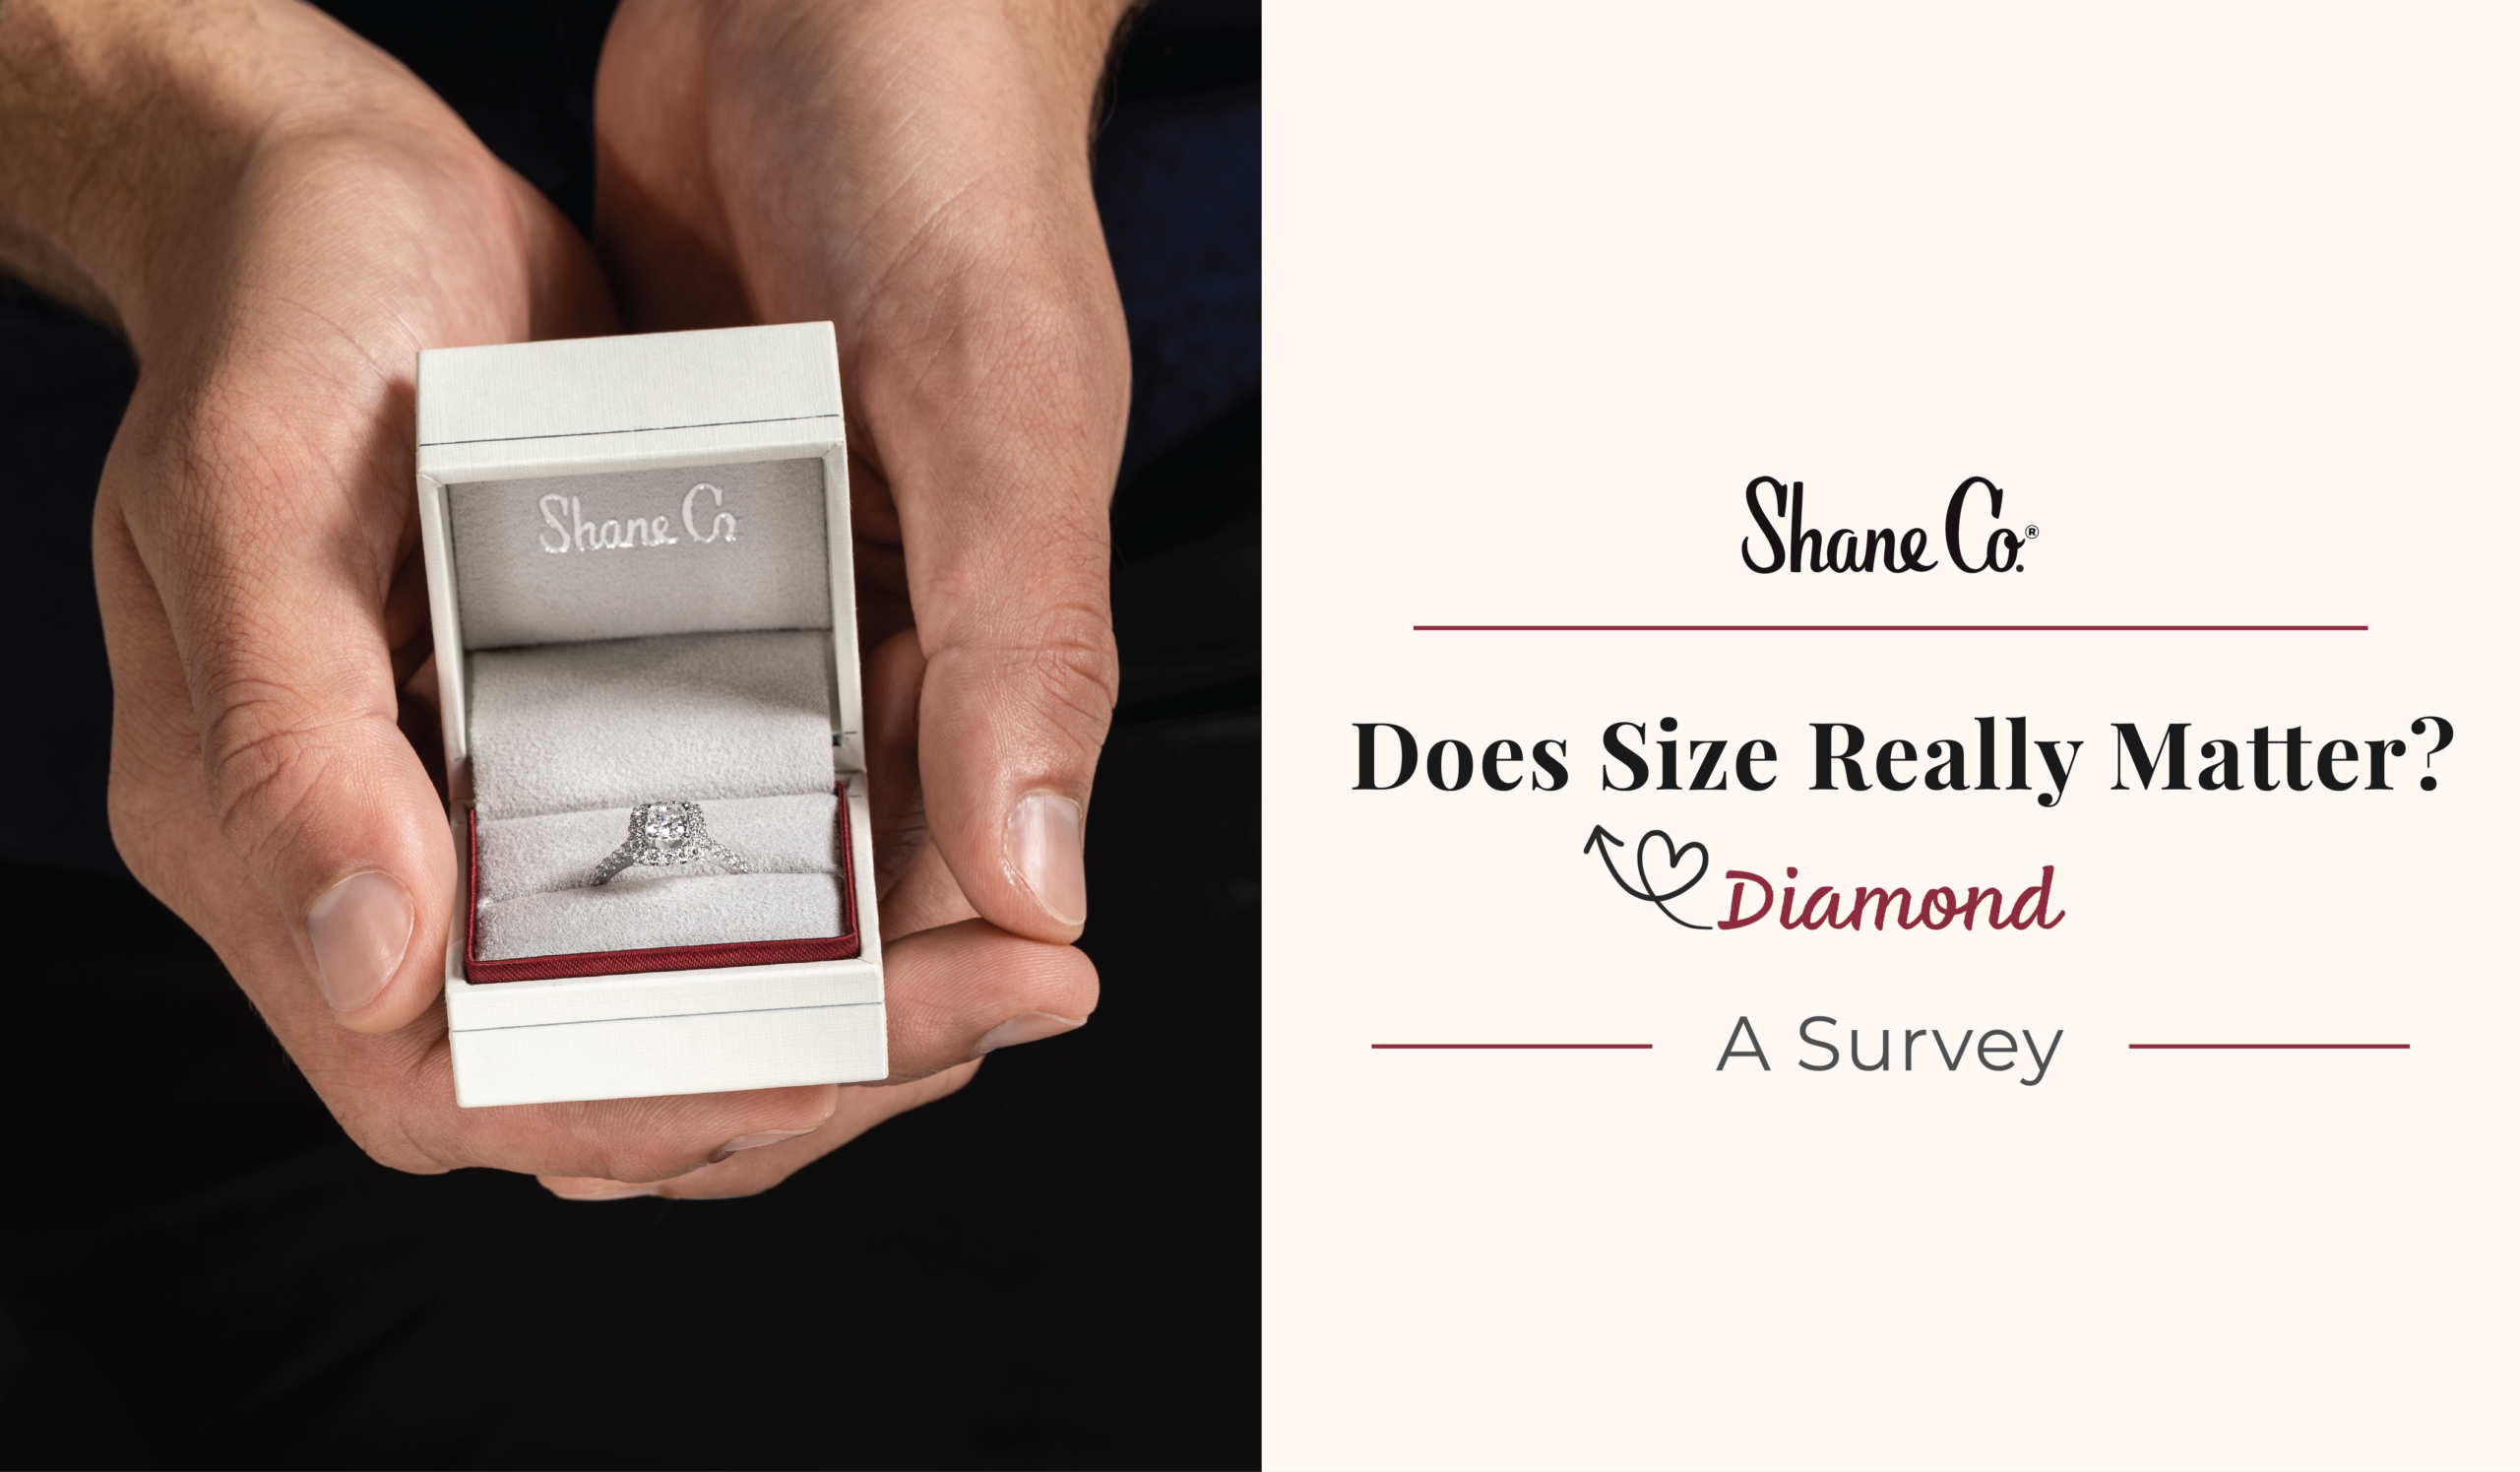 Does diamond size really matter?